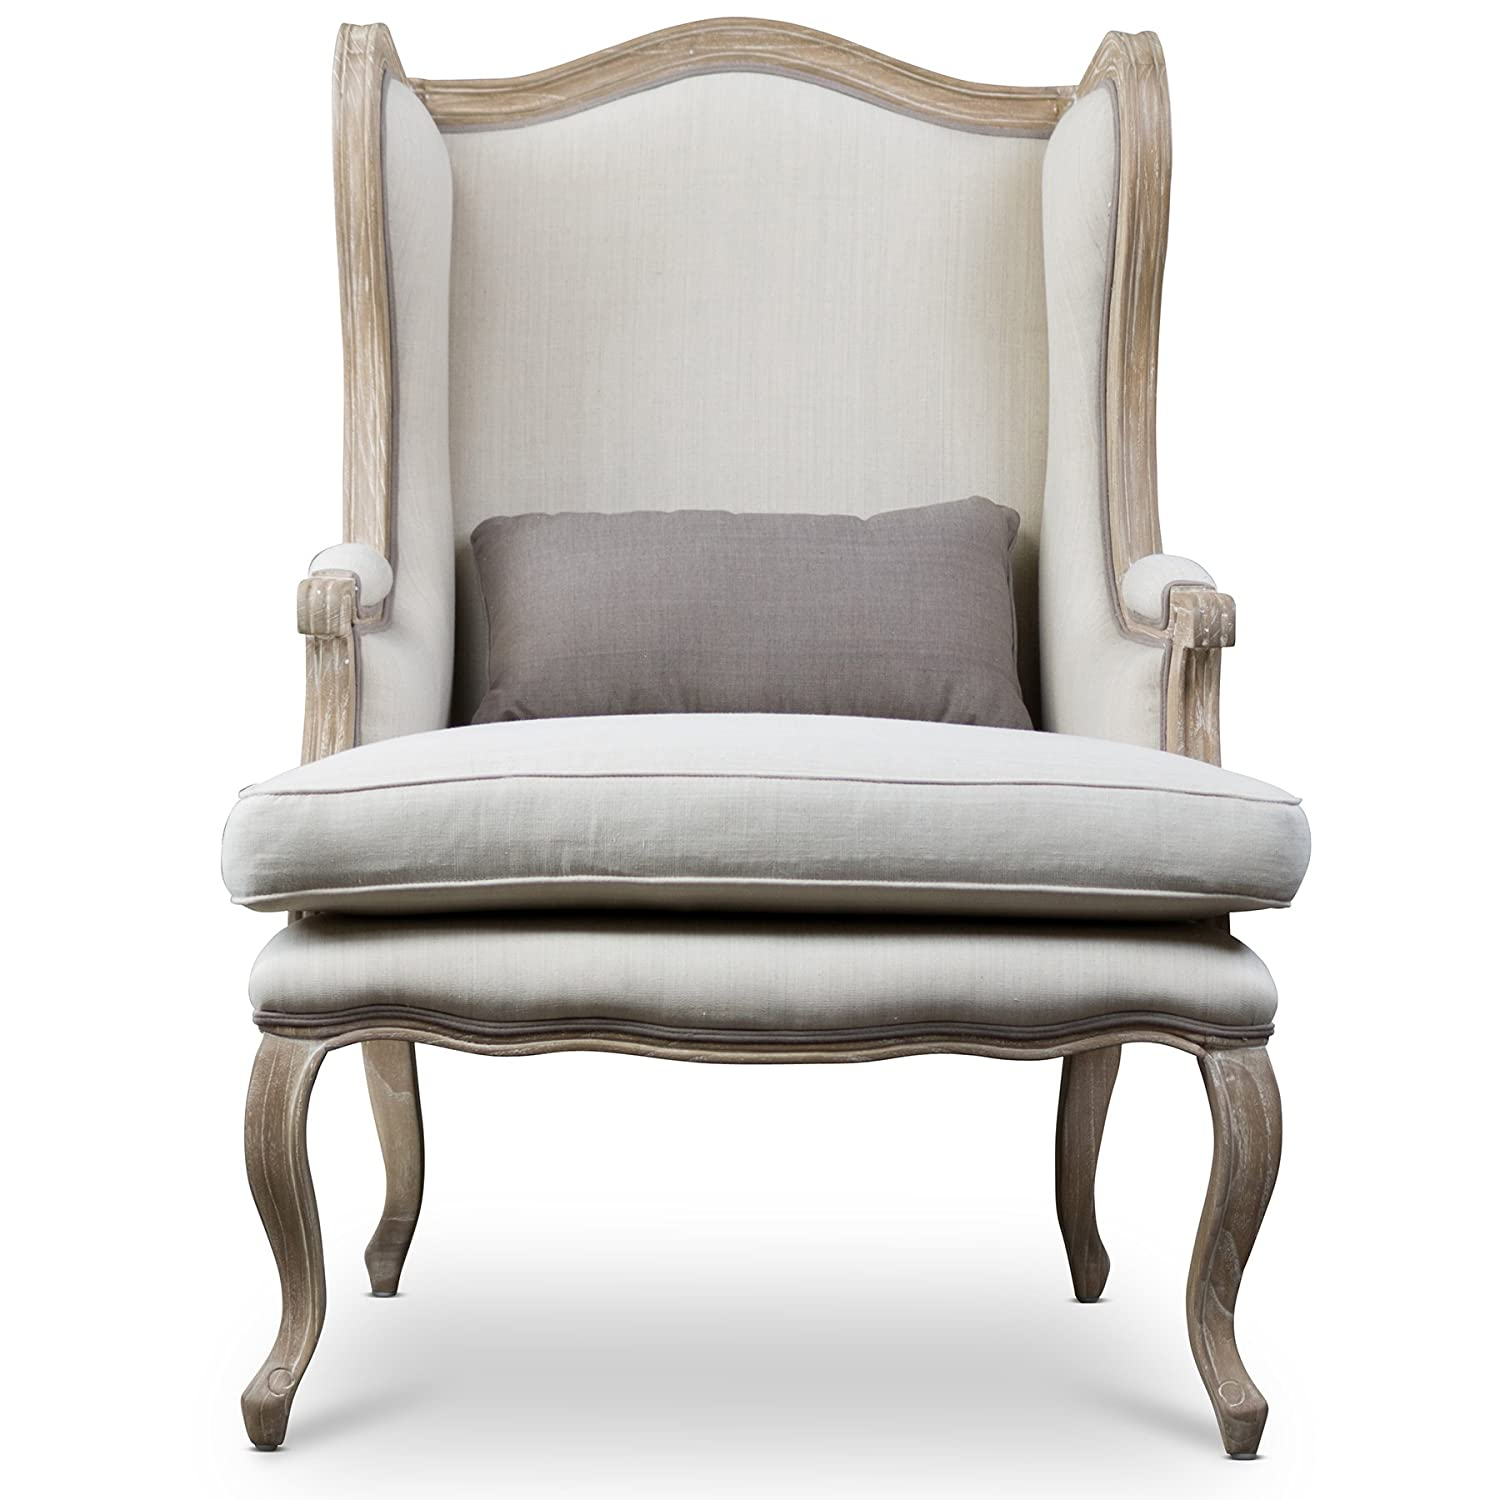 Baxton Studio French Country Wing Chair